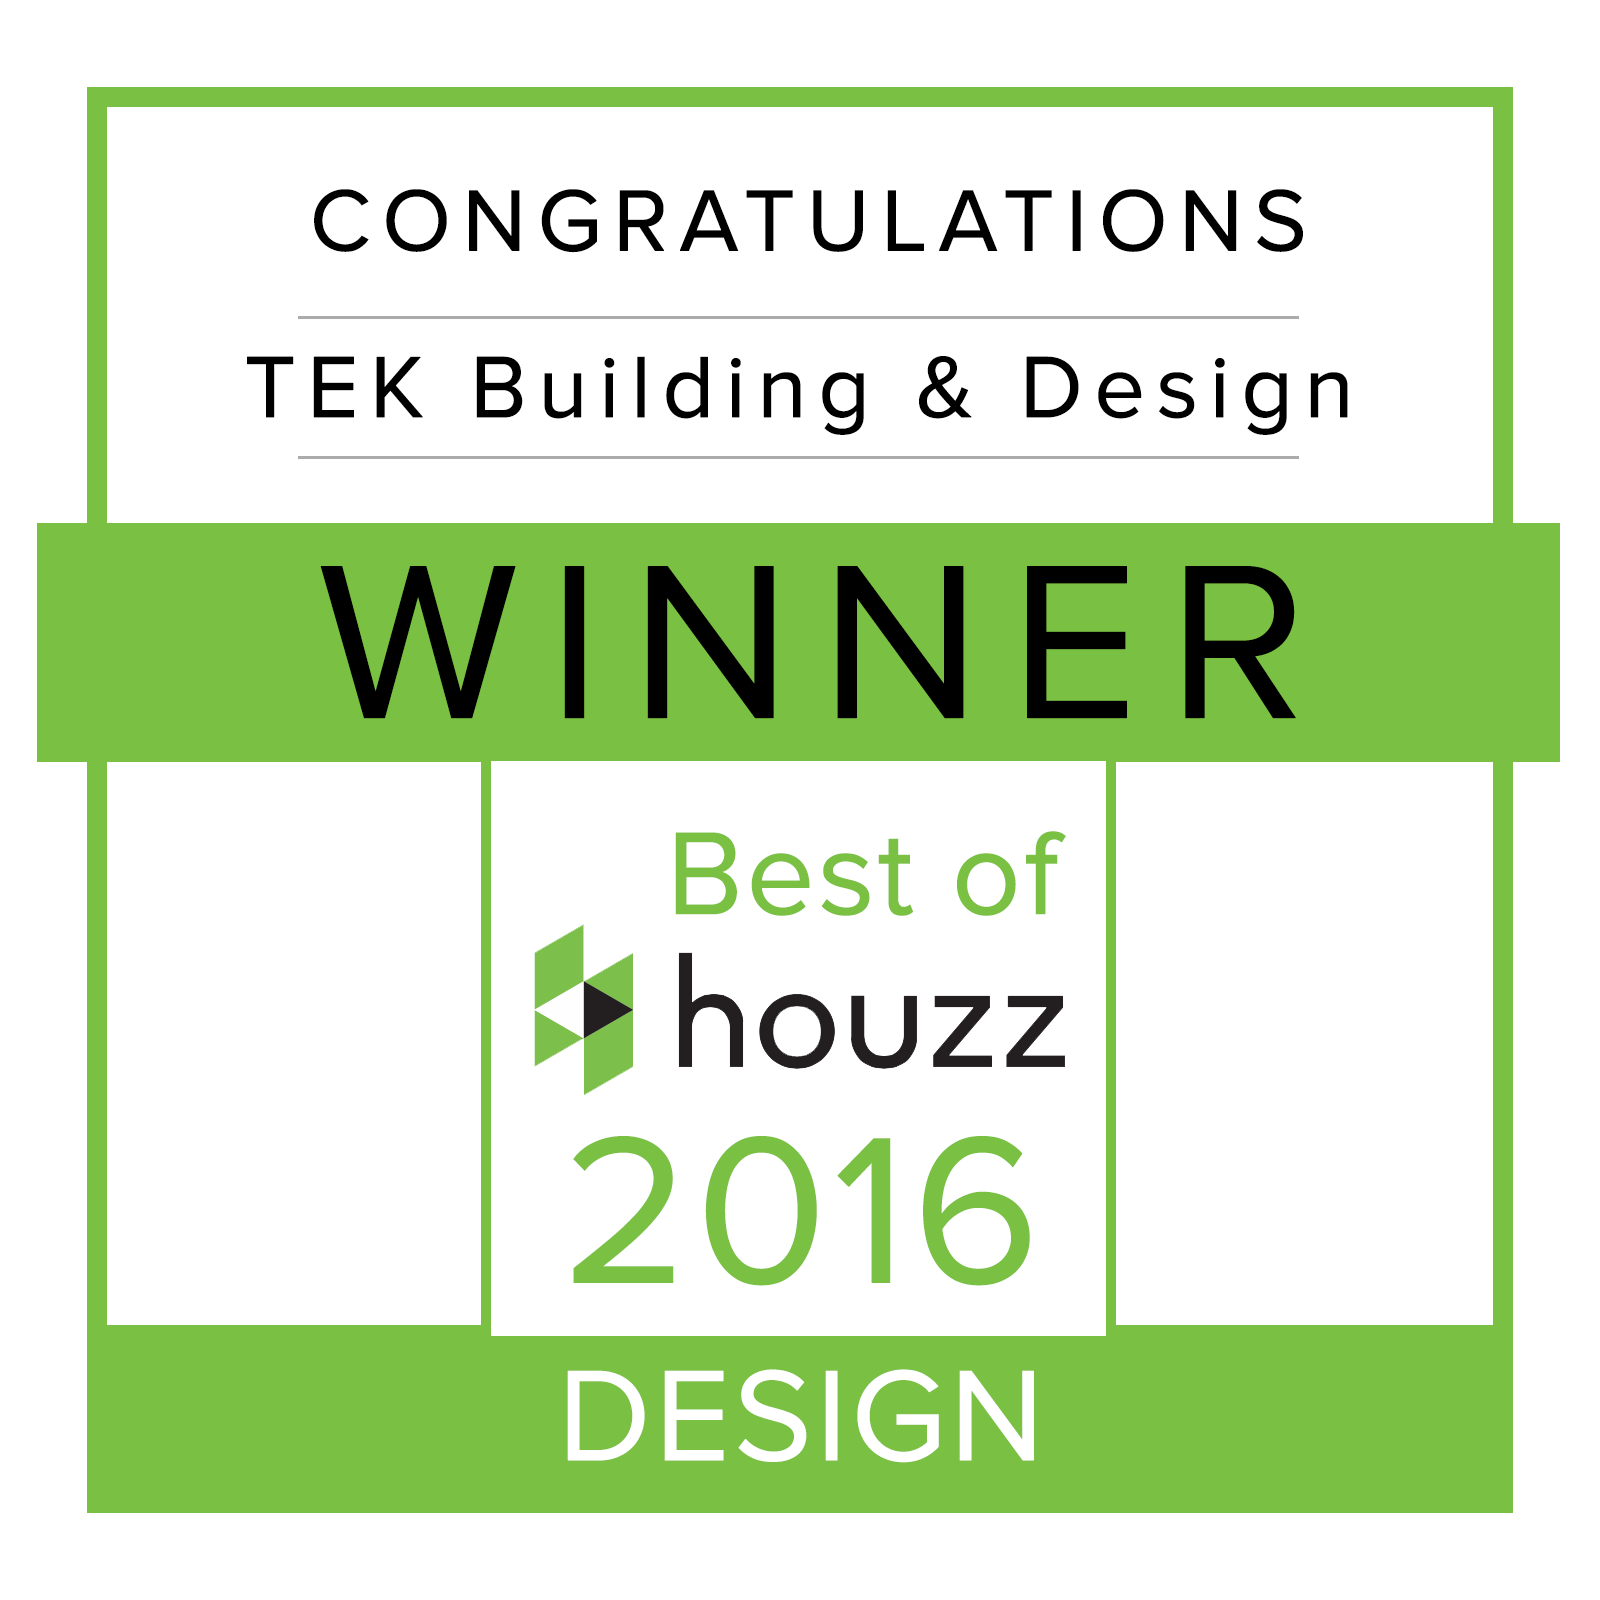 Winner Best of Houzz 2016 Design